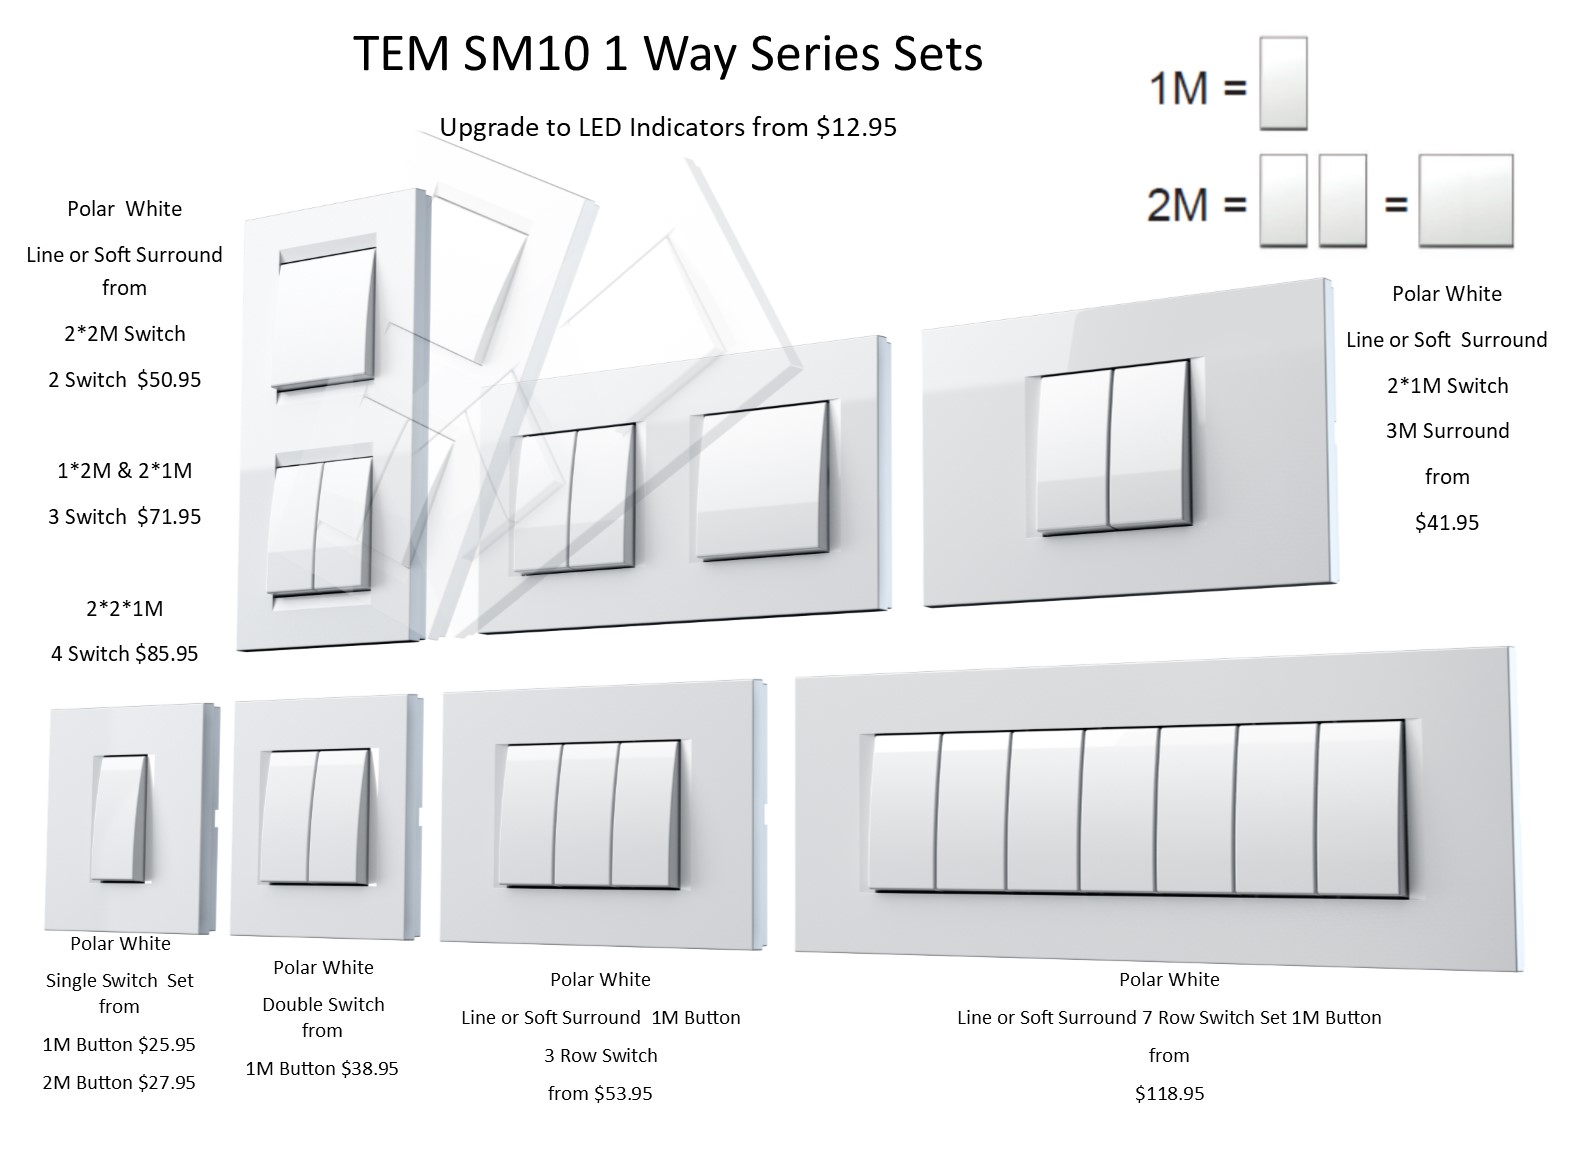 Tem 1 Way Series Sets 4 Push Button Switch Sm10 Are Easily Upgradable With 28 Surrounds Colour Led Indicator Options Available